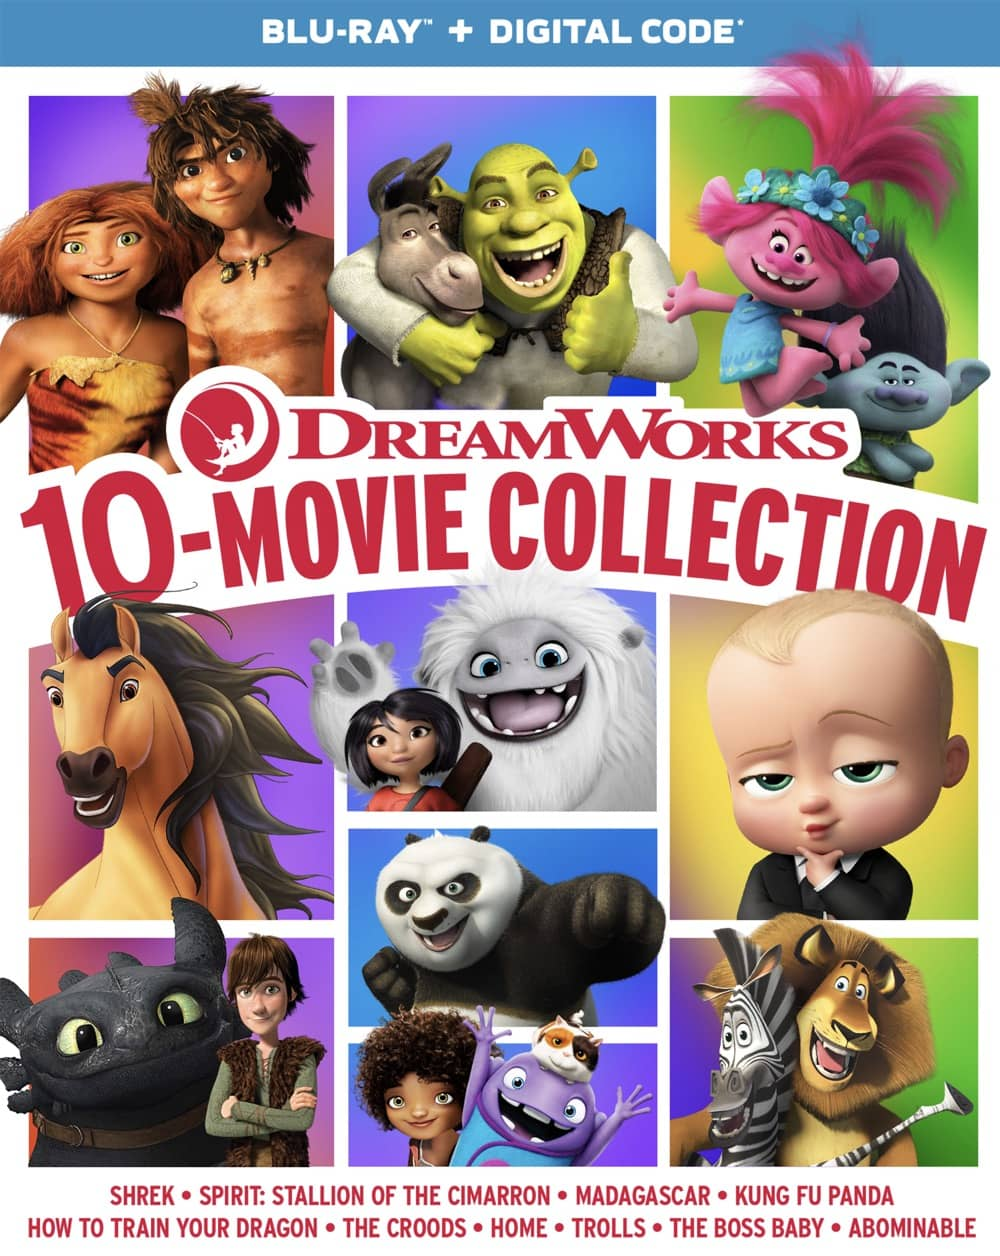 DreamWorks10MovieCollection BD 2D o card